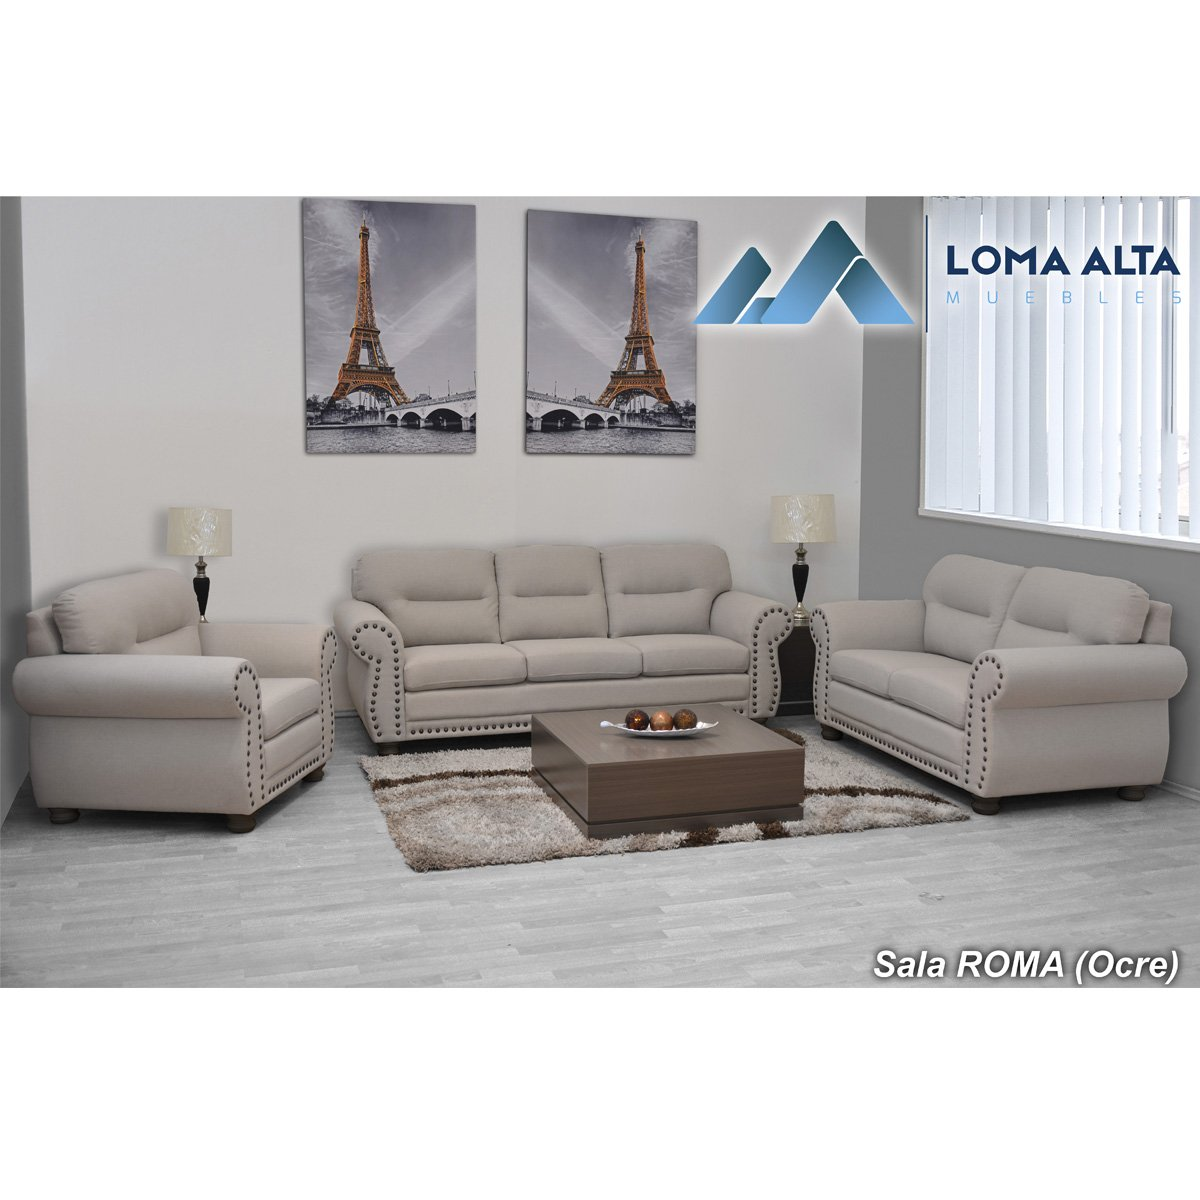 Sof roma persia crema sears com mx me entiende for Muebles de sala sears